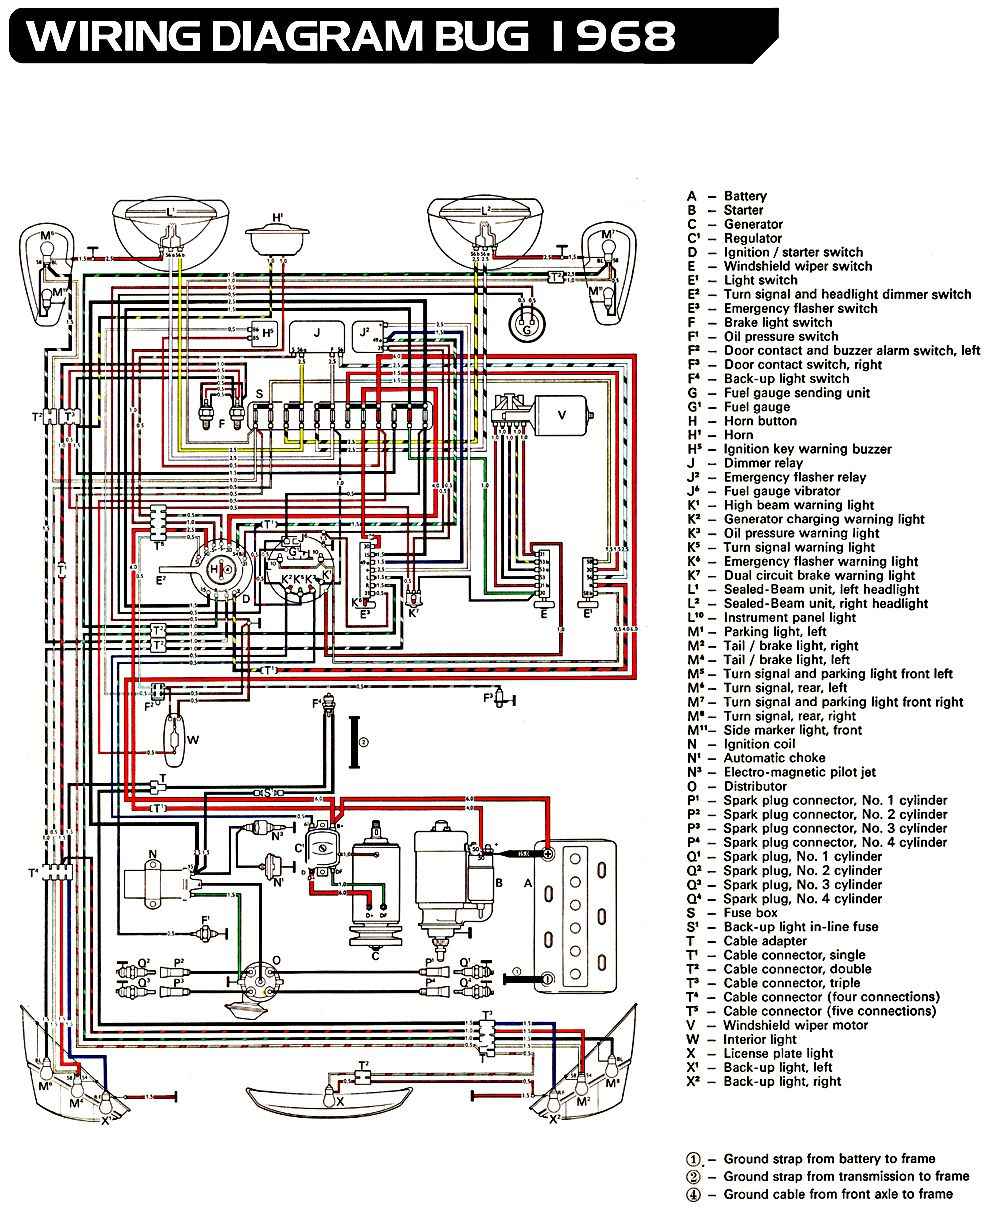 medium resolution of 1965 vw bug fuse block diagram wiring diagram used 1965 vw bug fuse block diagram